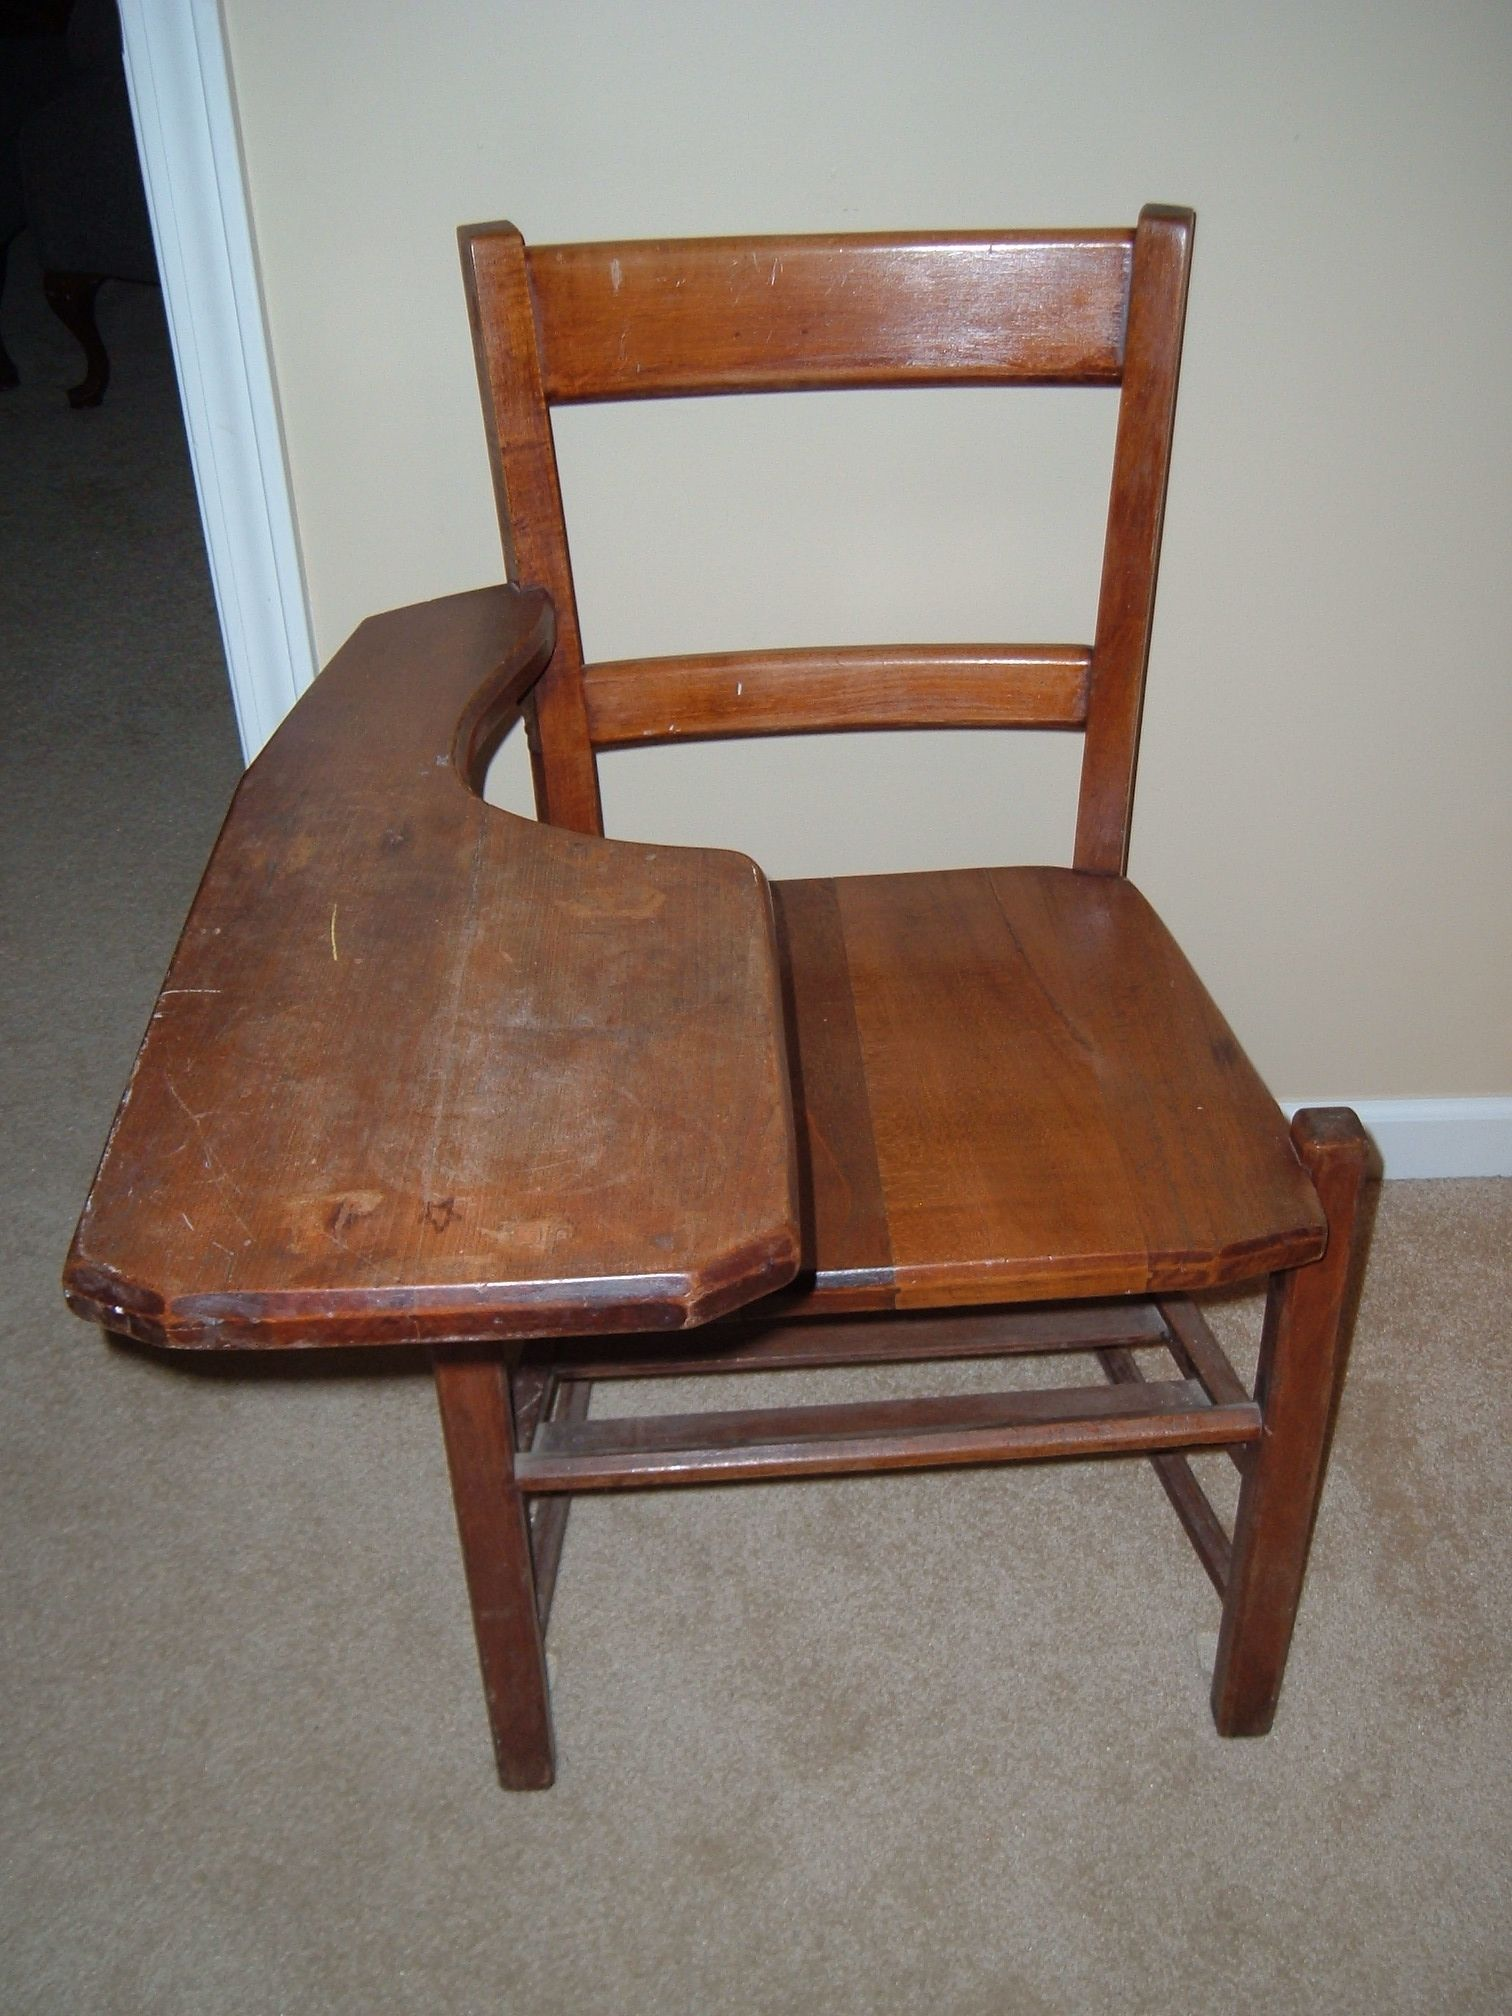 Vintage School Desk Chair - Desk chairs are just perfect for offices. You  can not look for a better chair than a desk chair - Old School Desk Chair Http://devintavern.com Pinterest